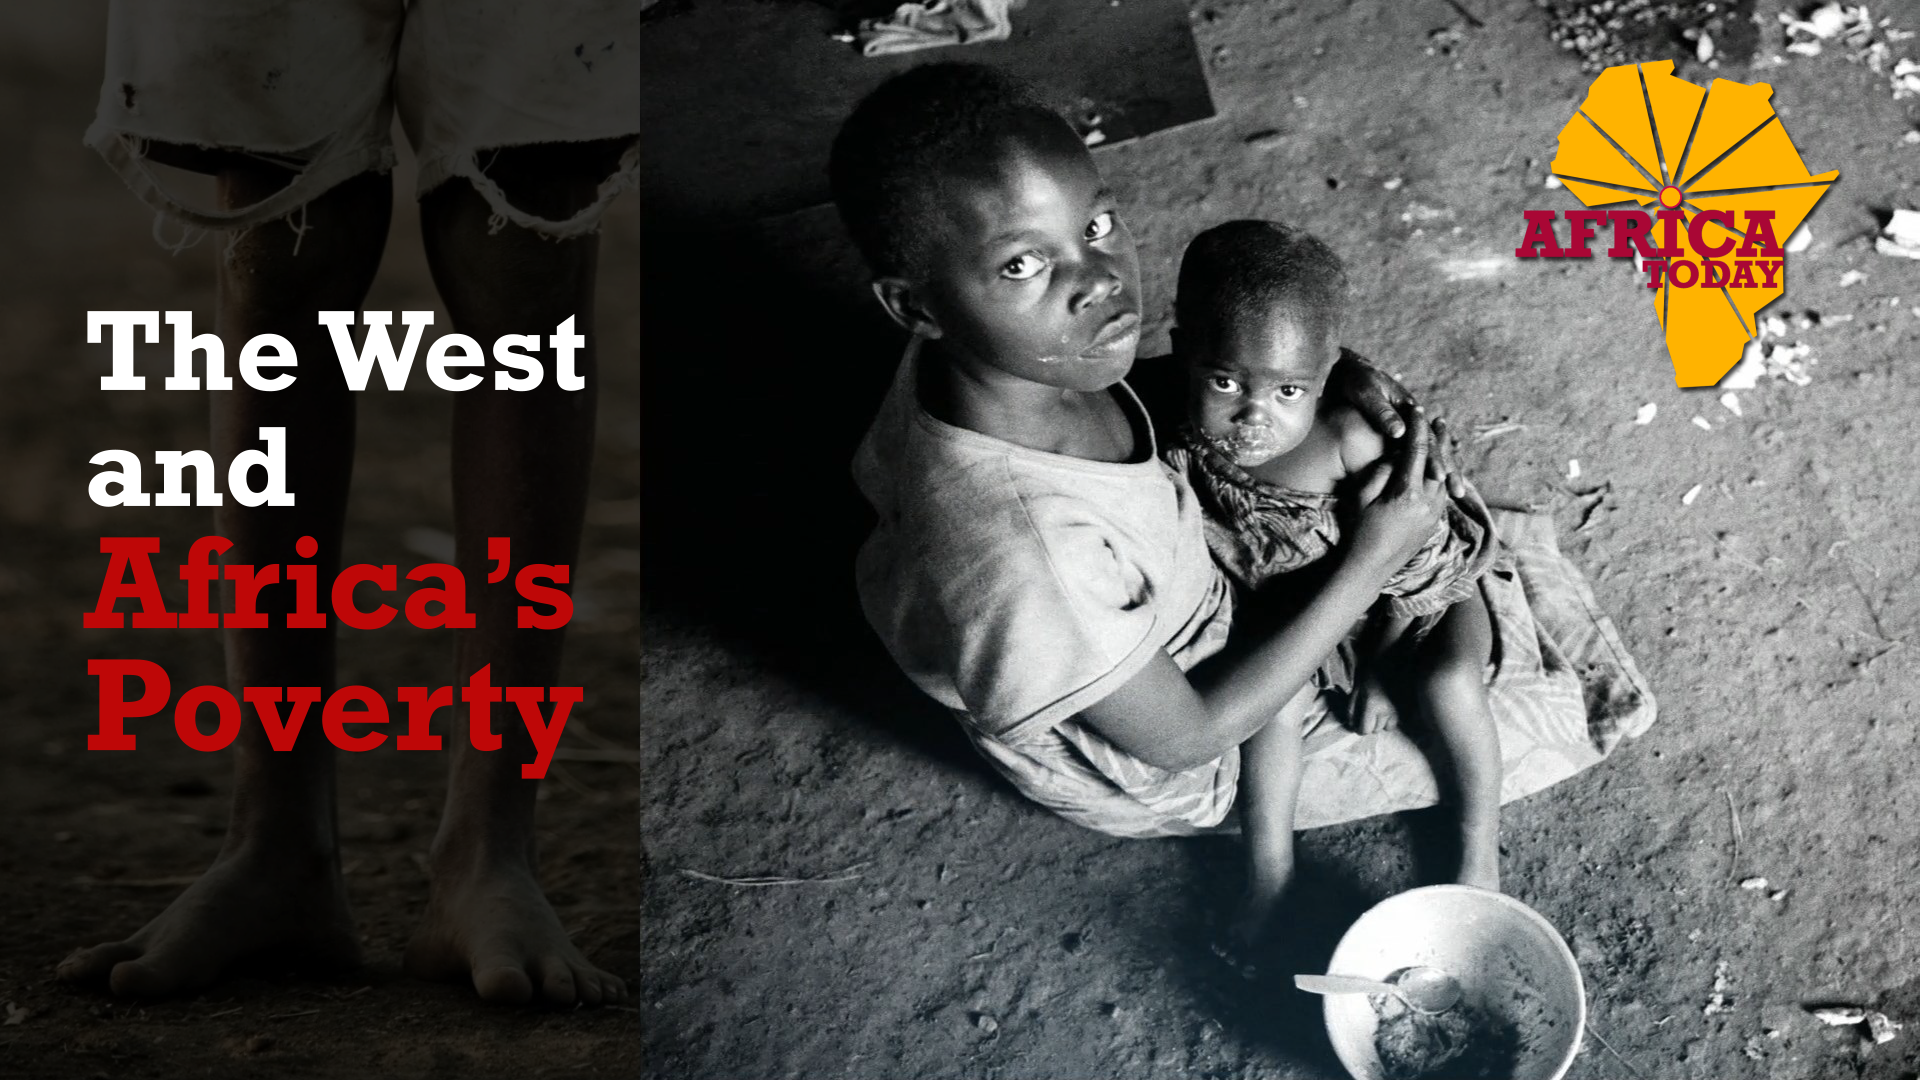 The West and Africa's poverty